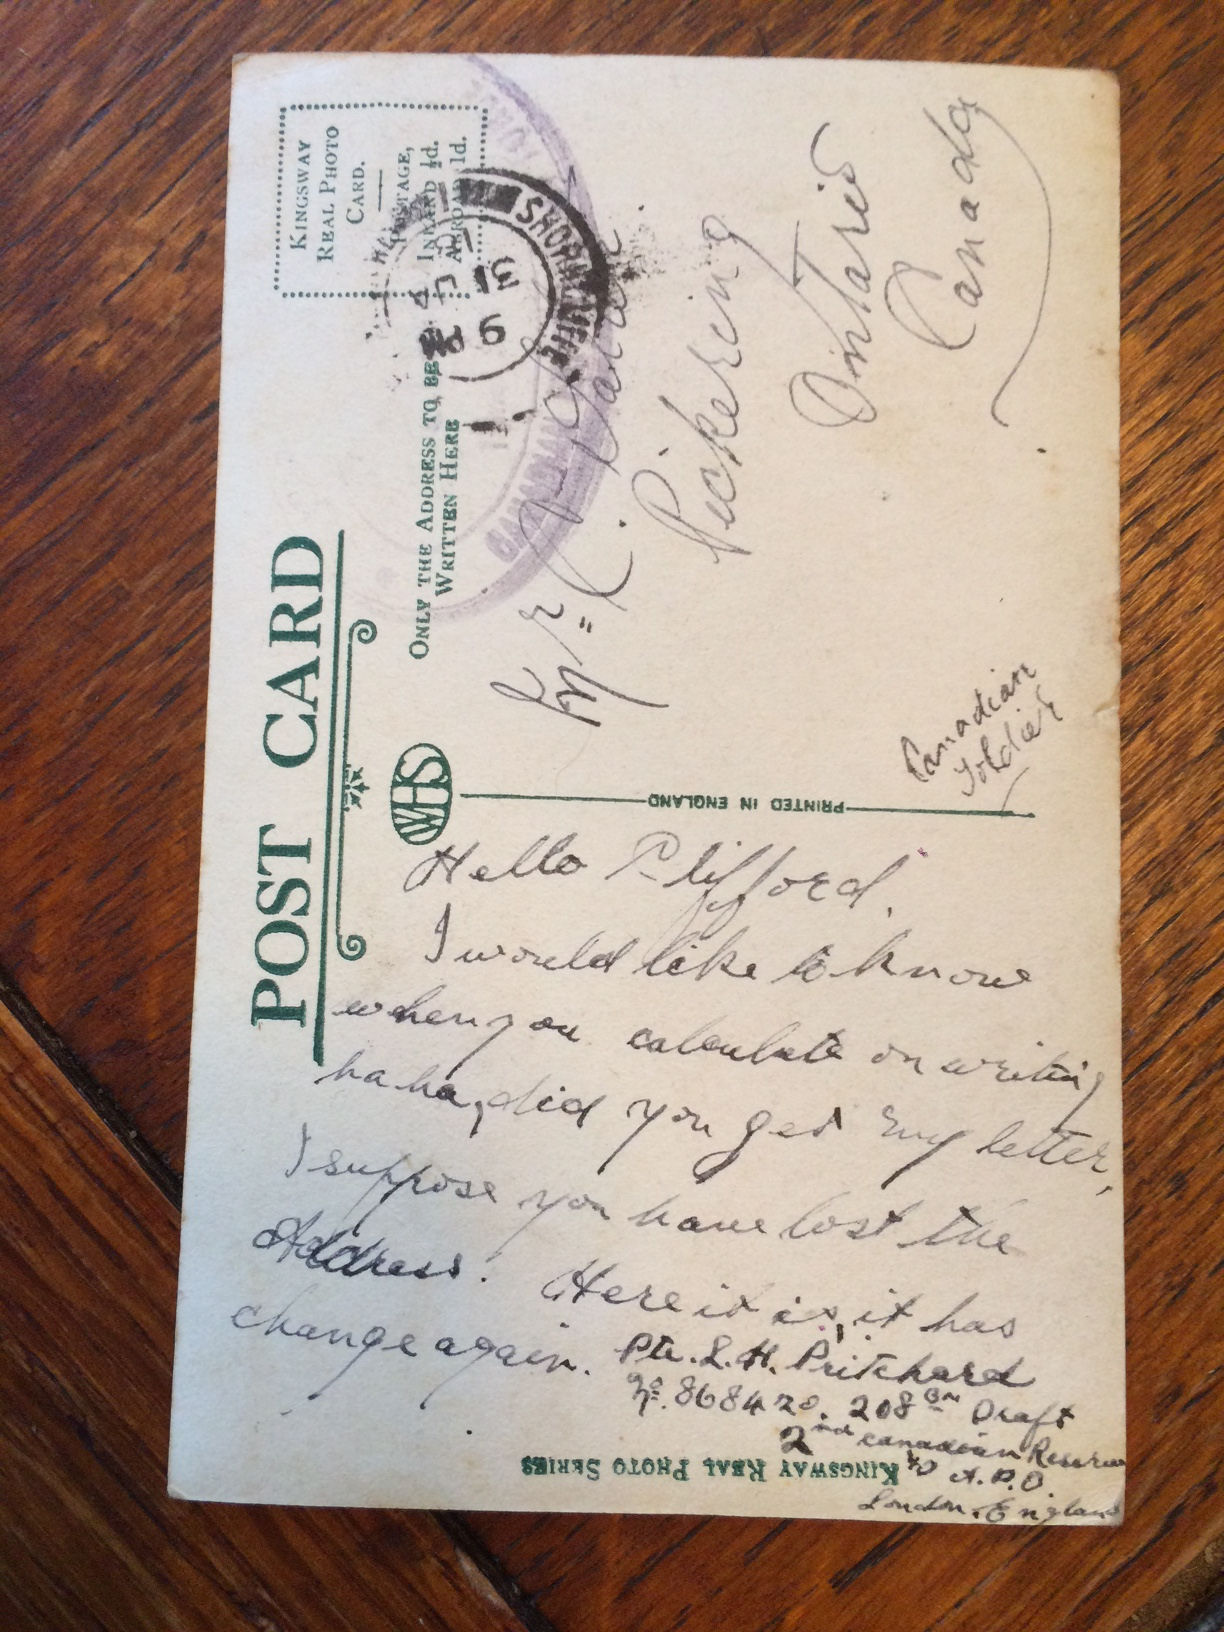 Post Card – Letter written to his friend Clifford in Pickering, Ont